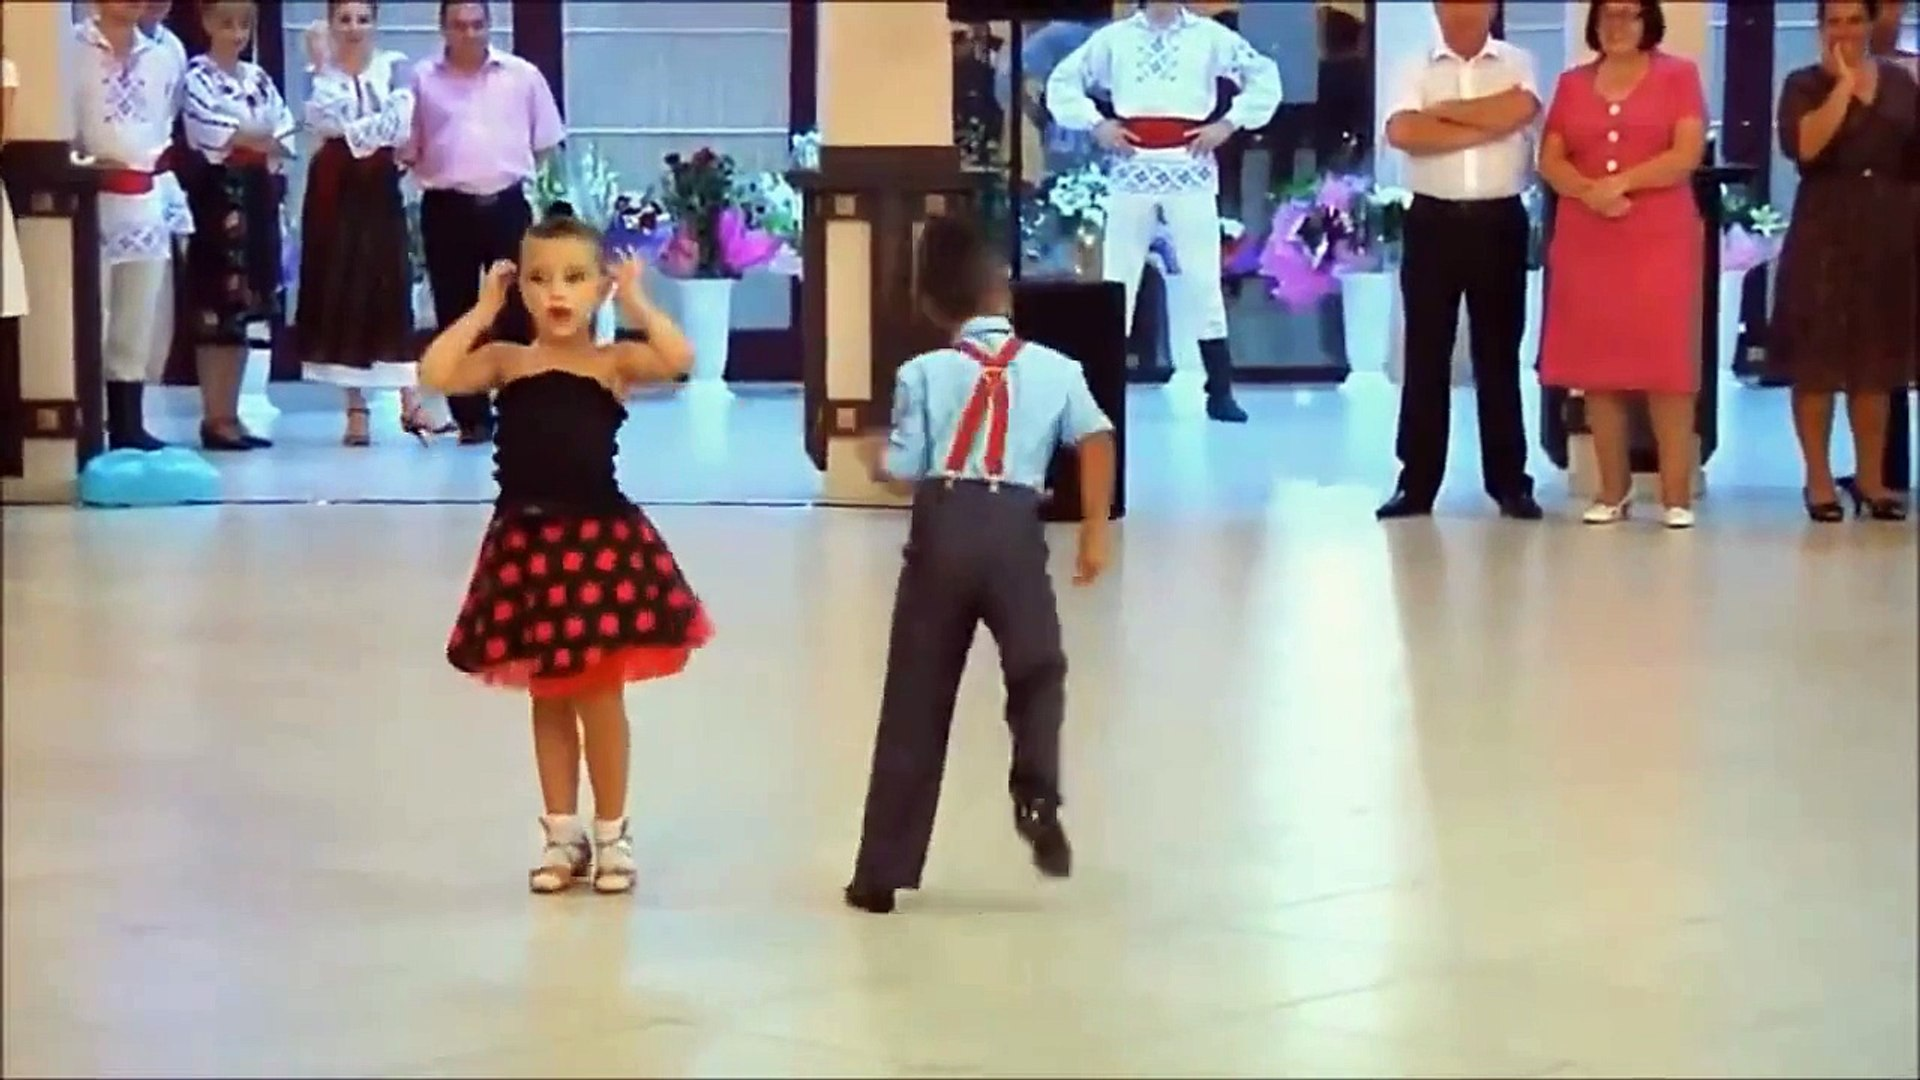 Amazing Talented Kids Dancing to some ... cute music!